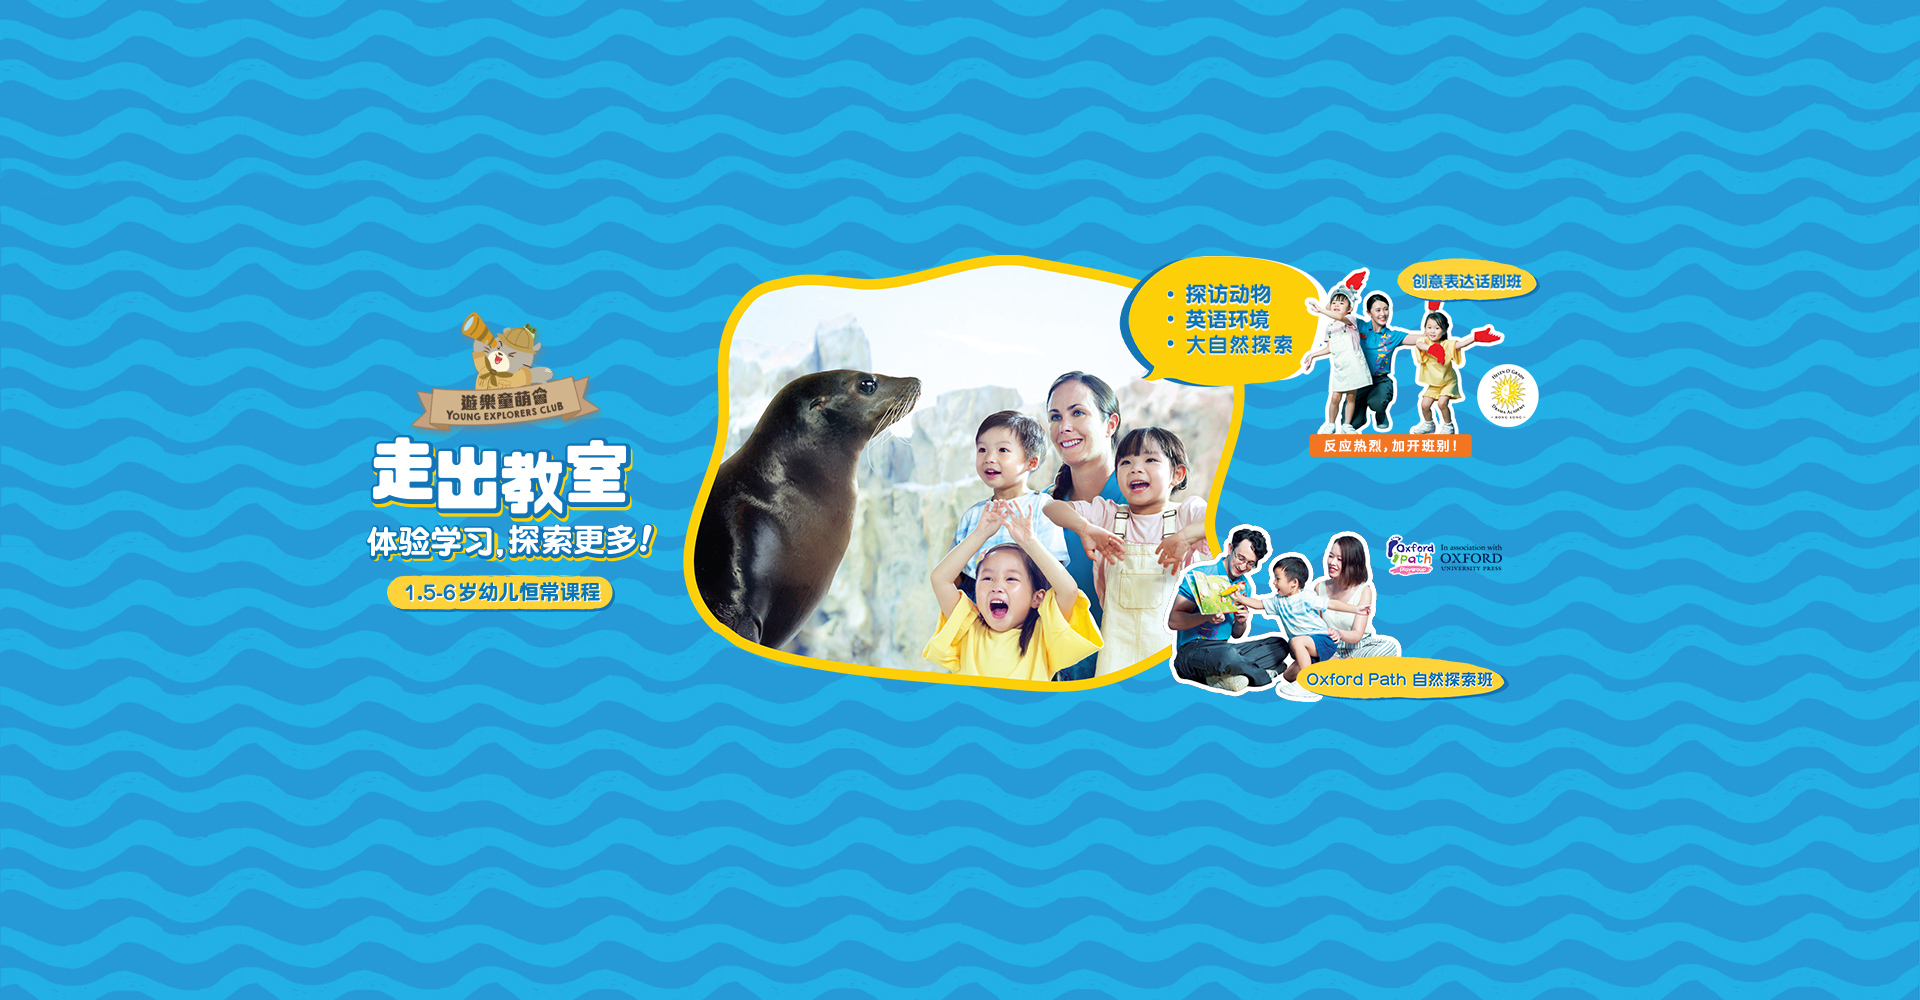 https://media.oceanpark.cn/files/s3fs-public/inside_banner01_desktop_sc-2.jpg